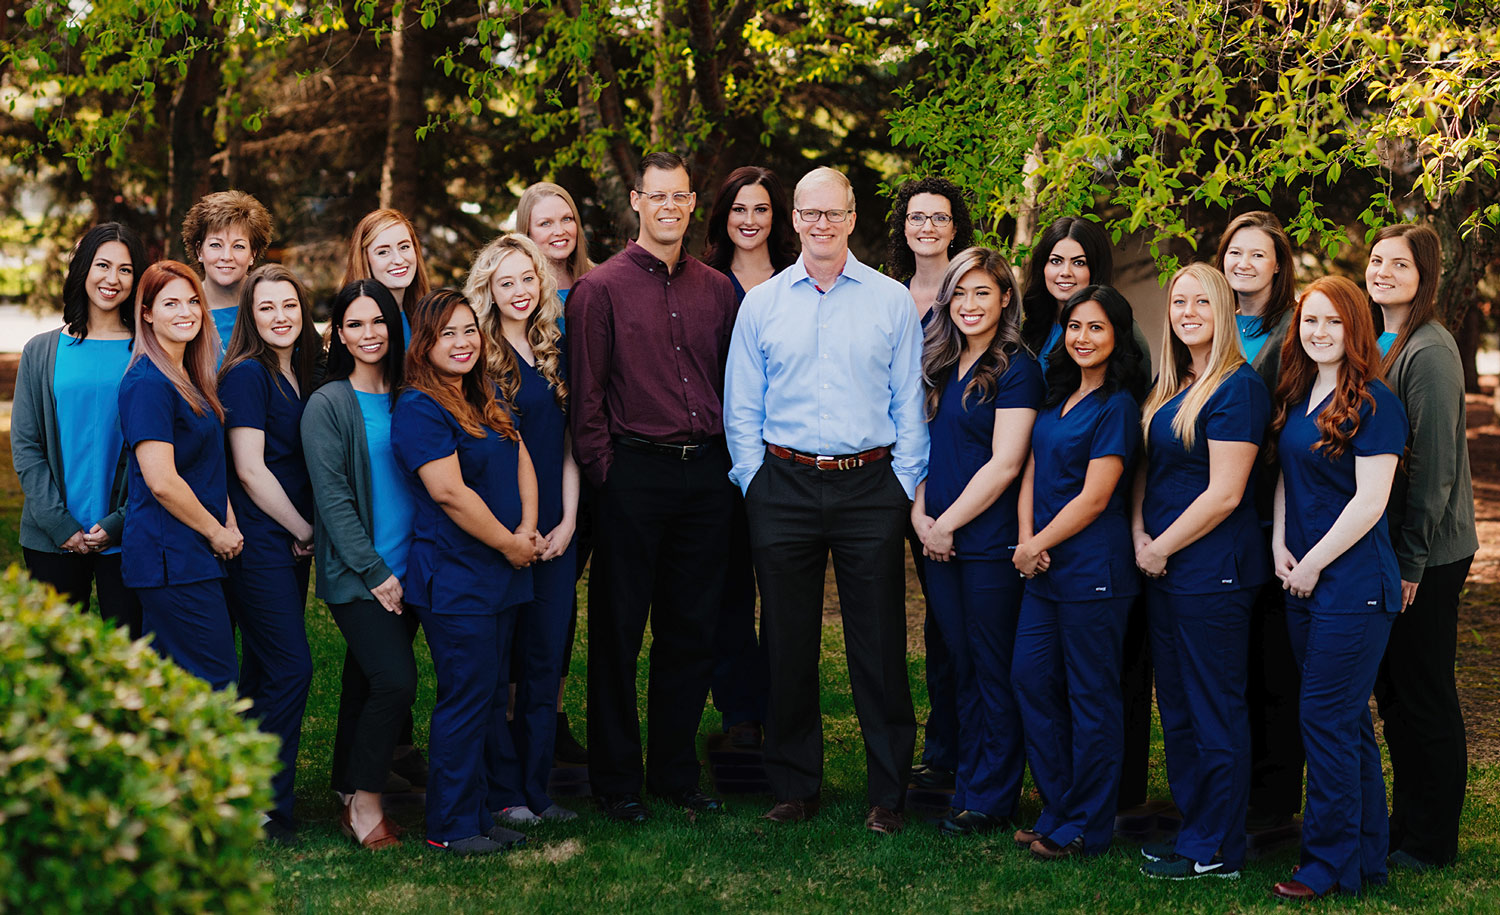 Murray-orthodontics-staff-alaska.jpg